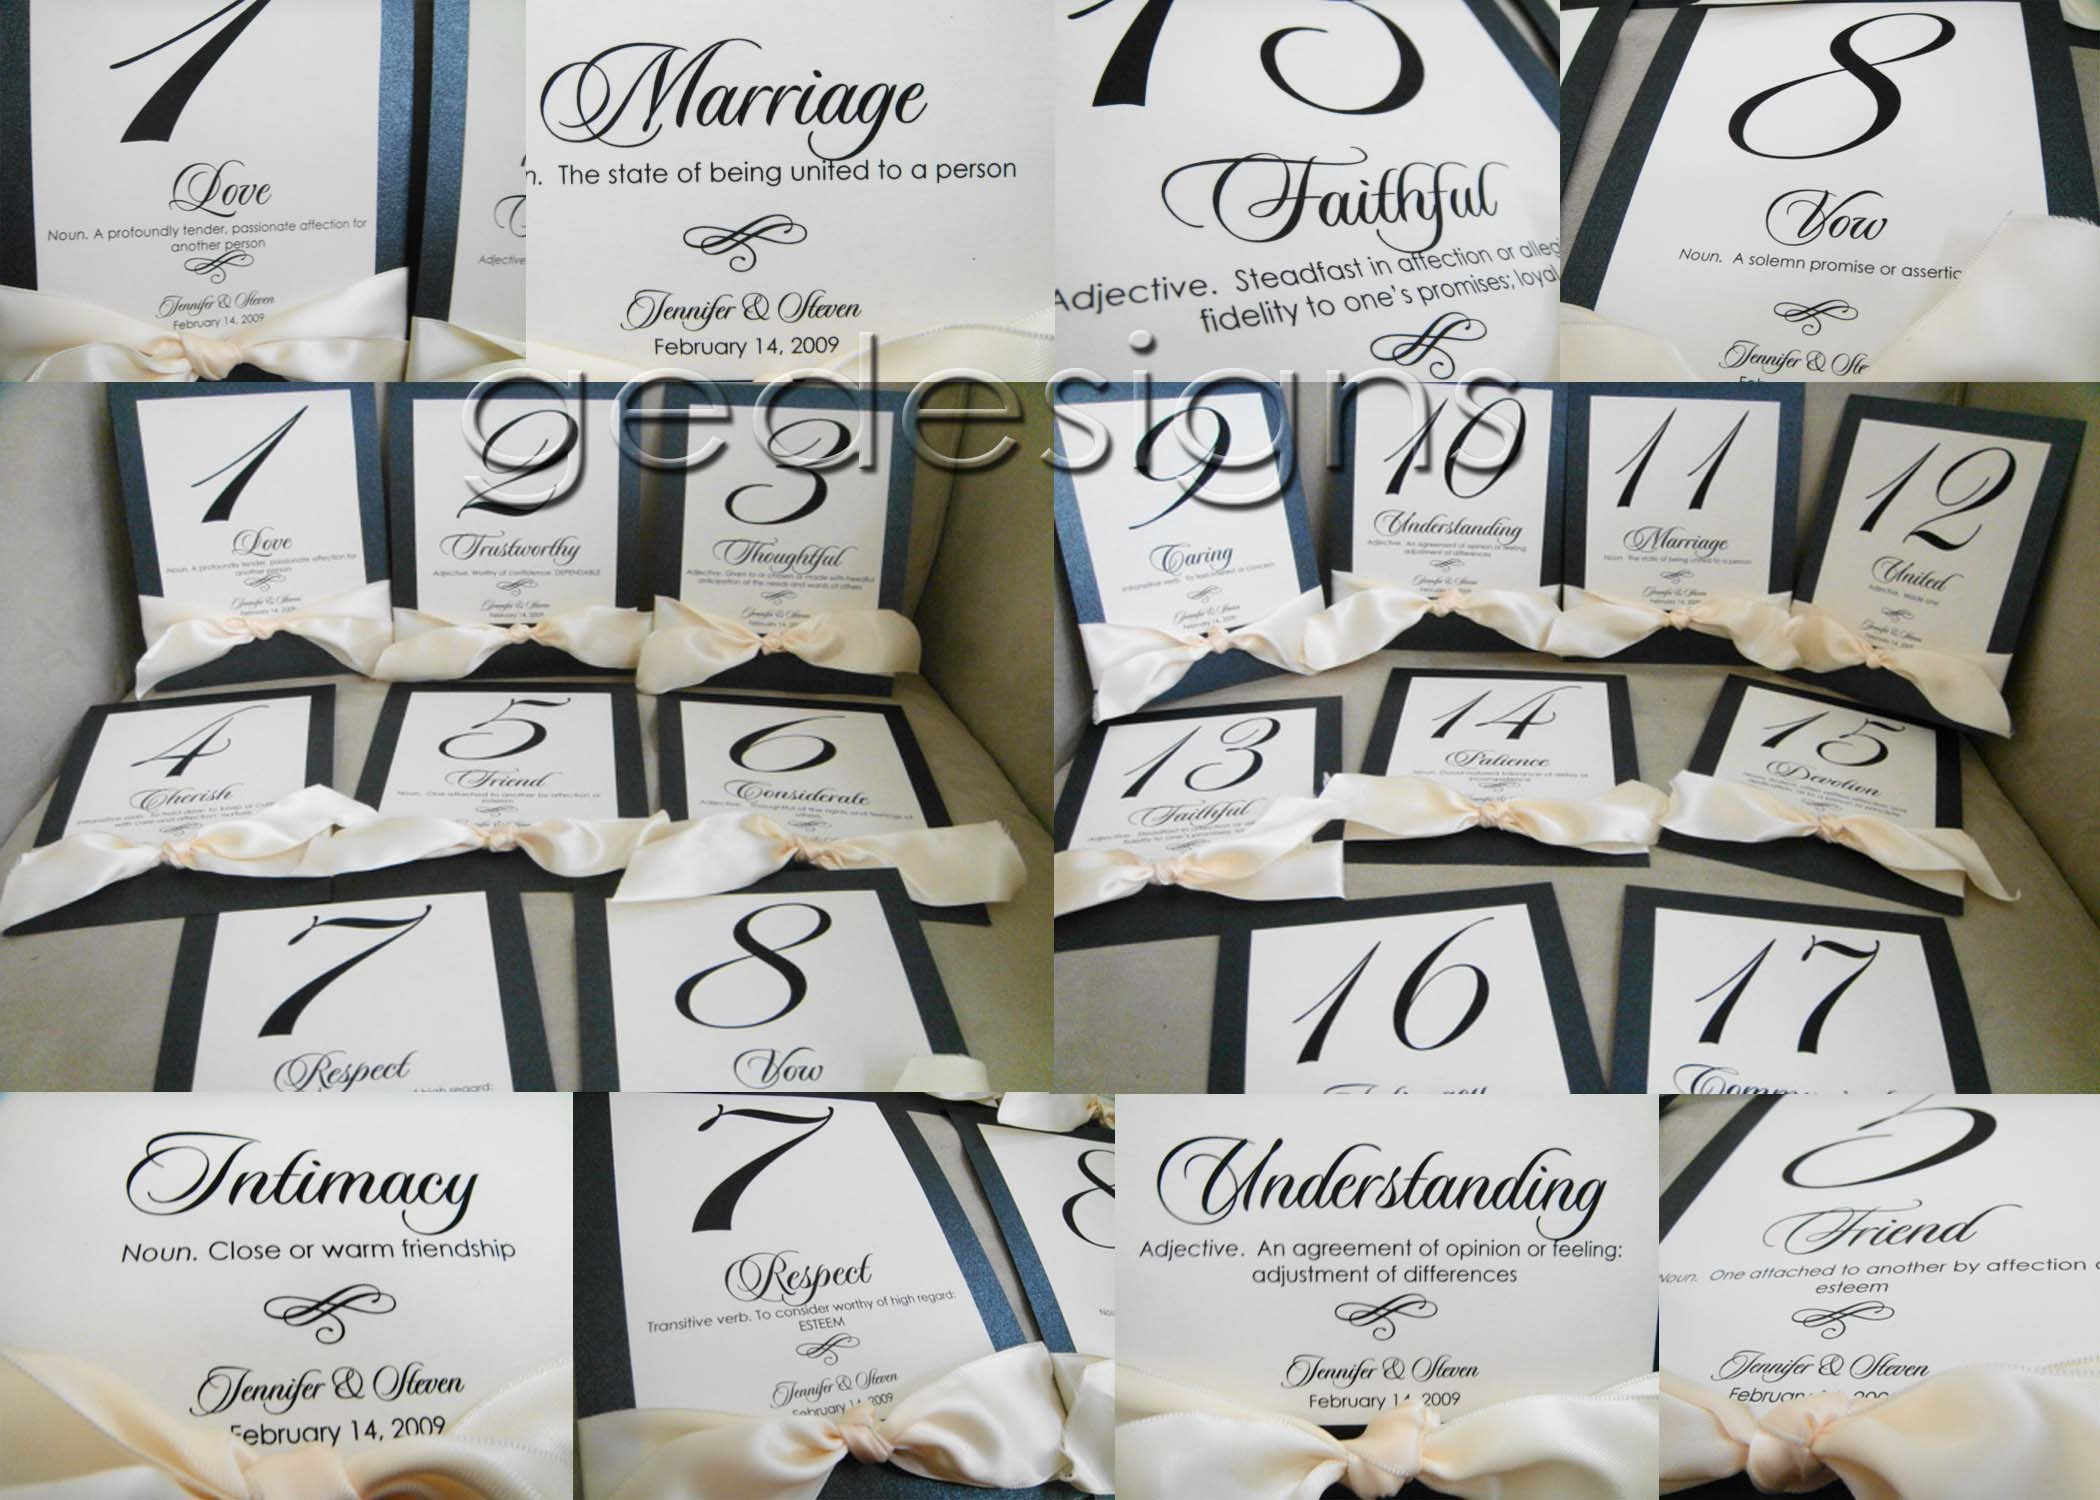 Reception, Flowers & Decor, Stationery, Monogram, Table, Numbers, Ge designs